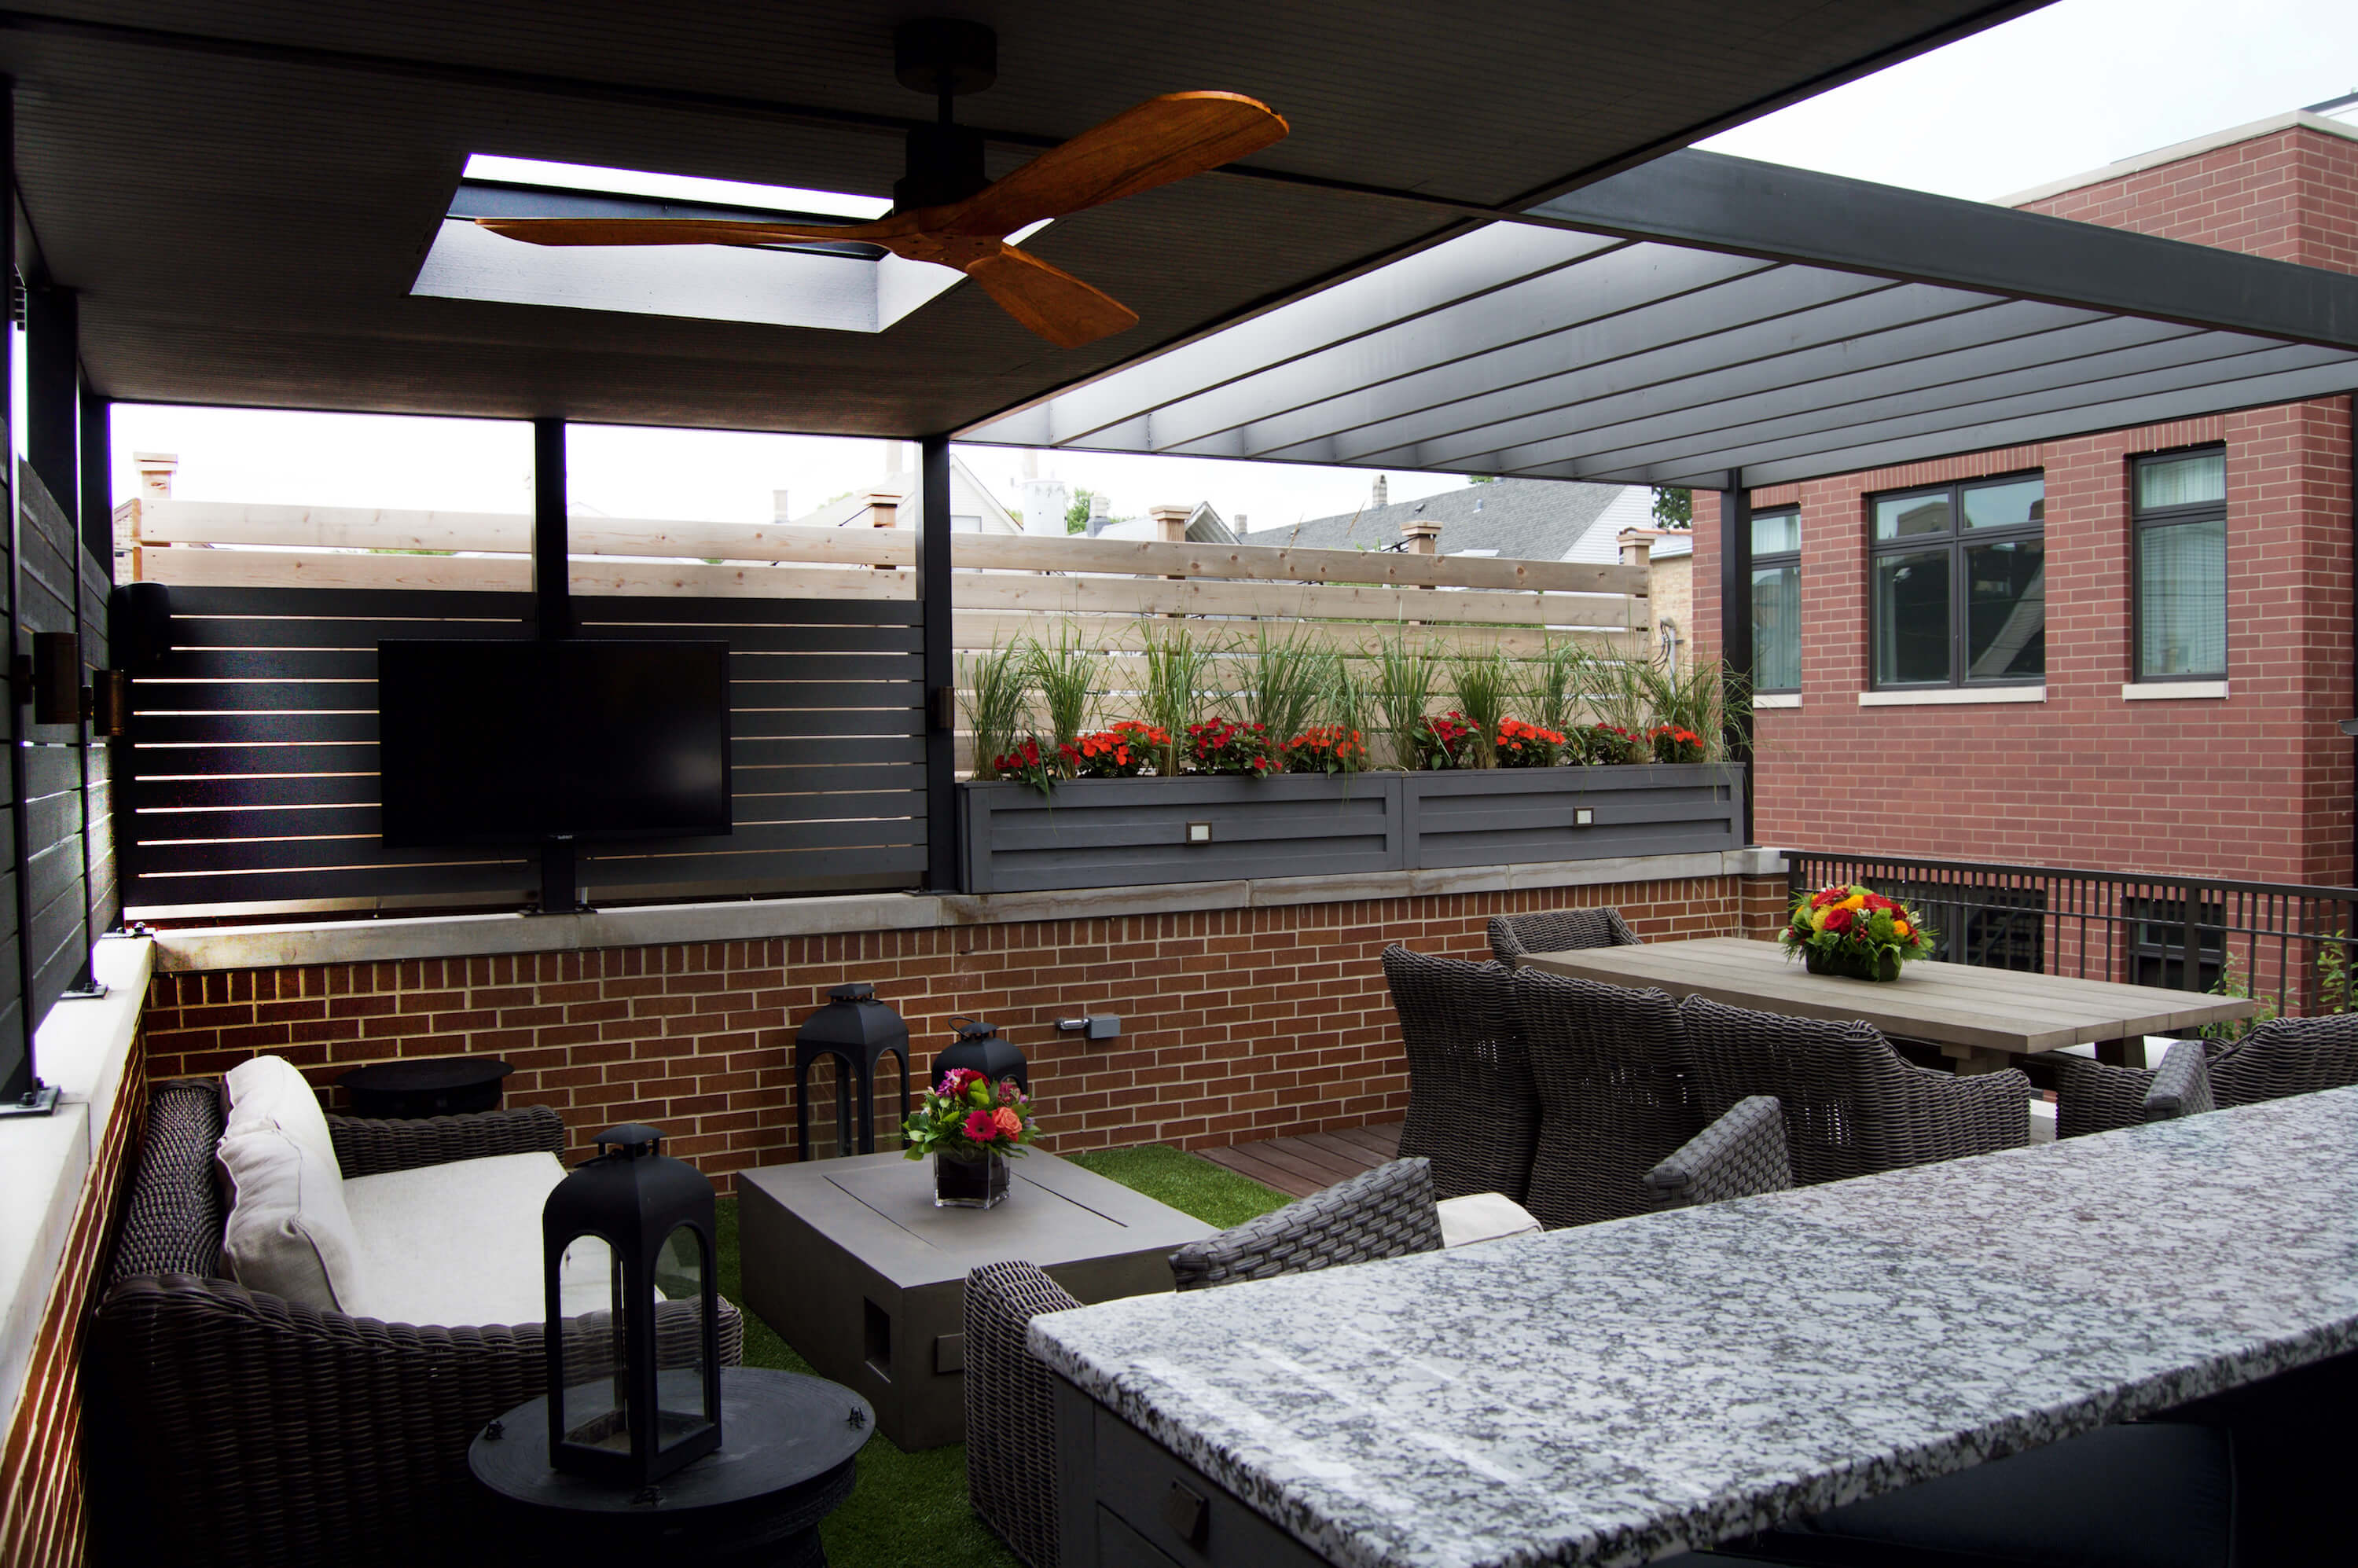 Roof deck renovation and modernization lakeview chicago for Patio decks for sale